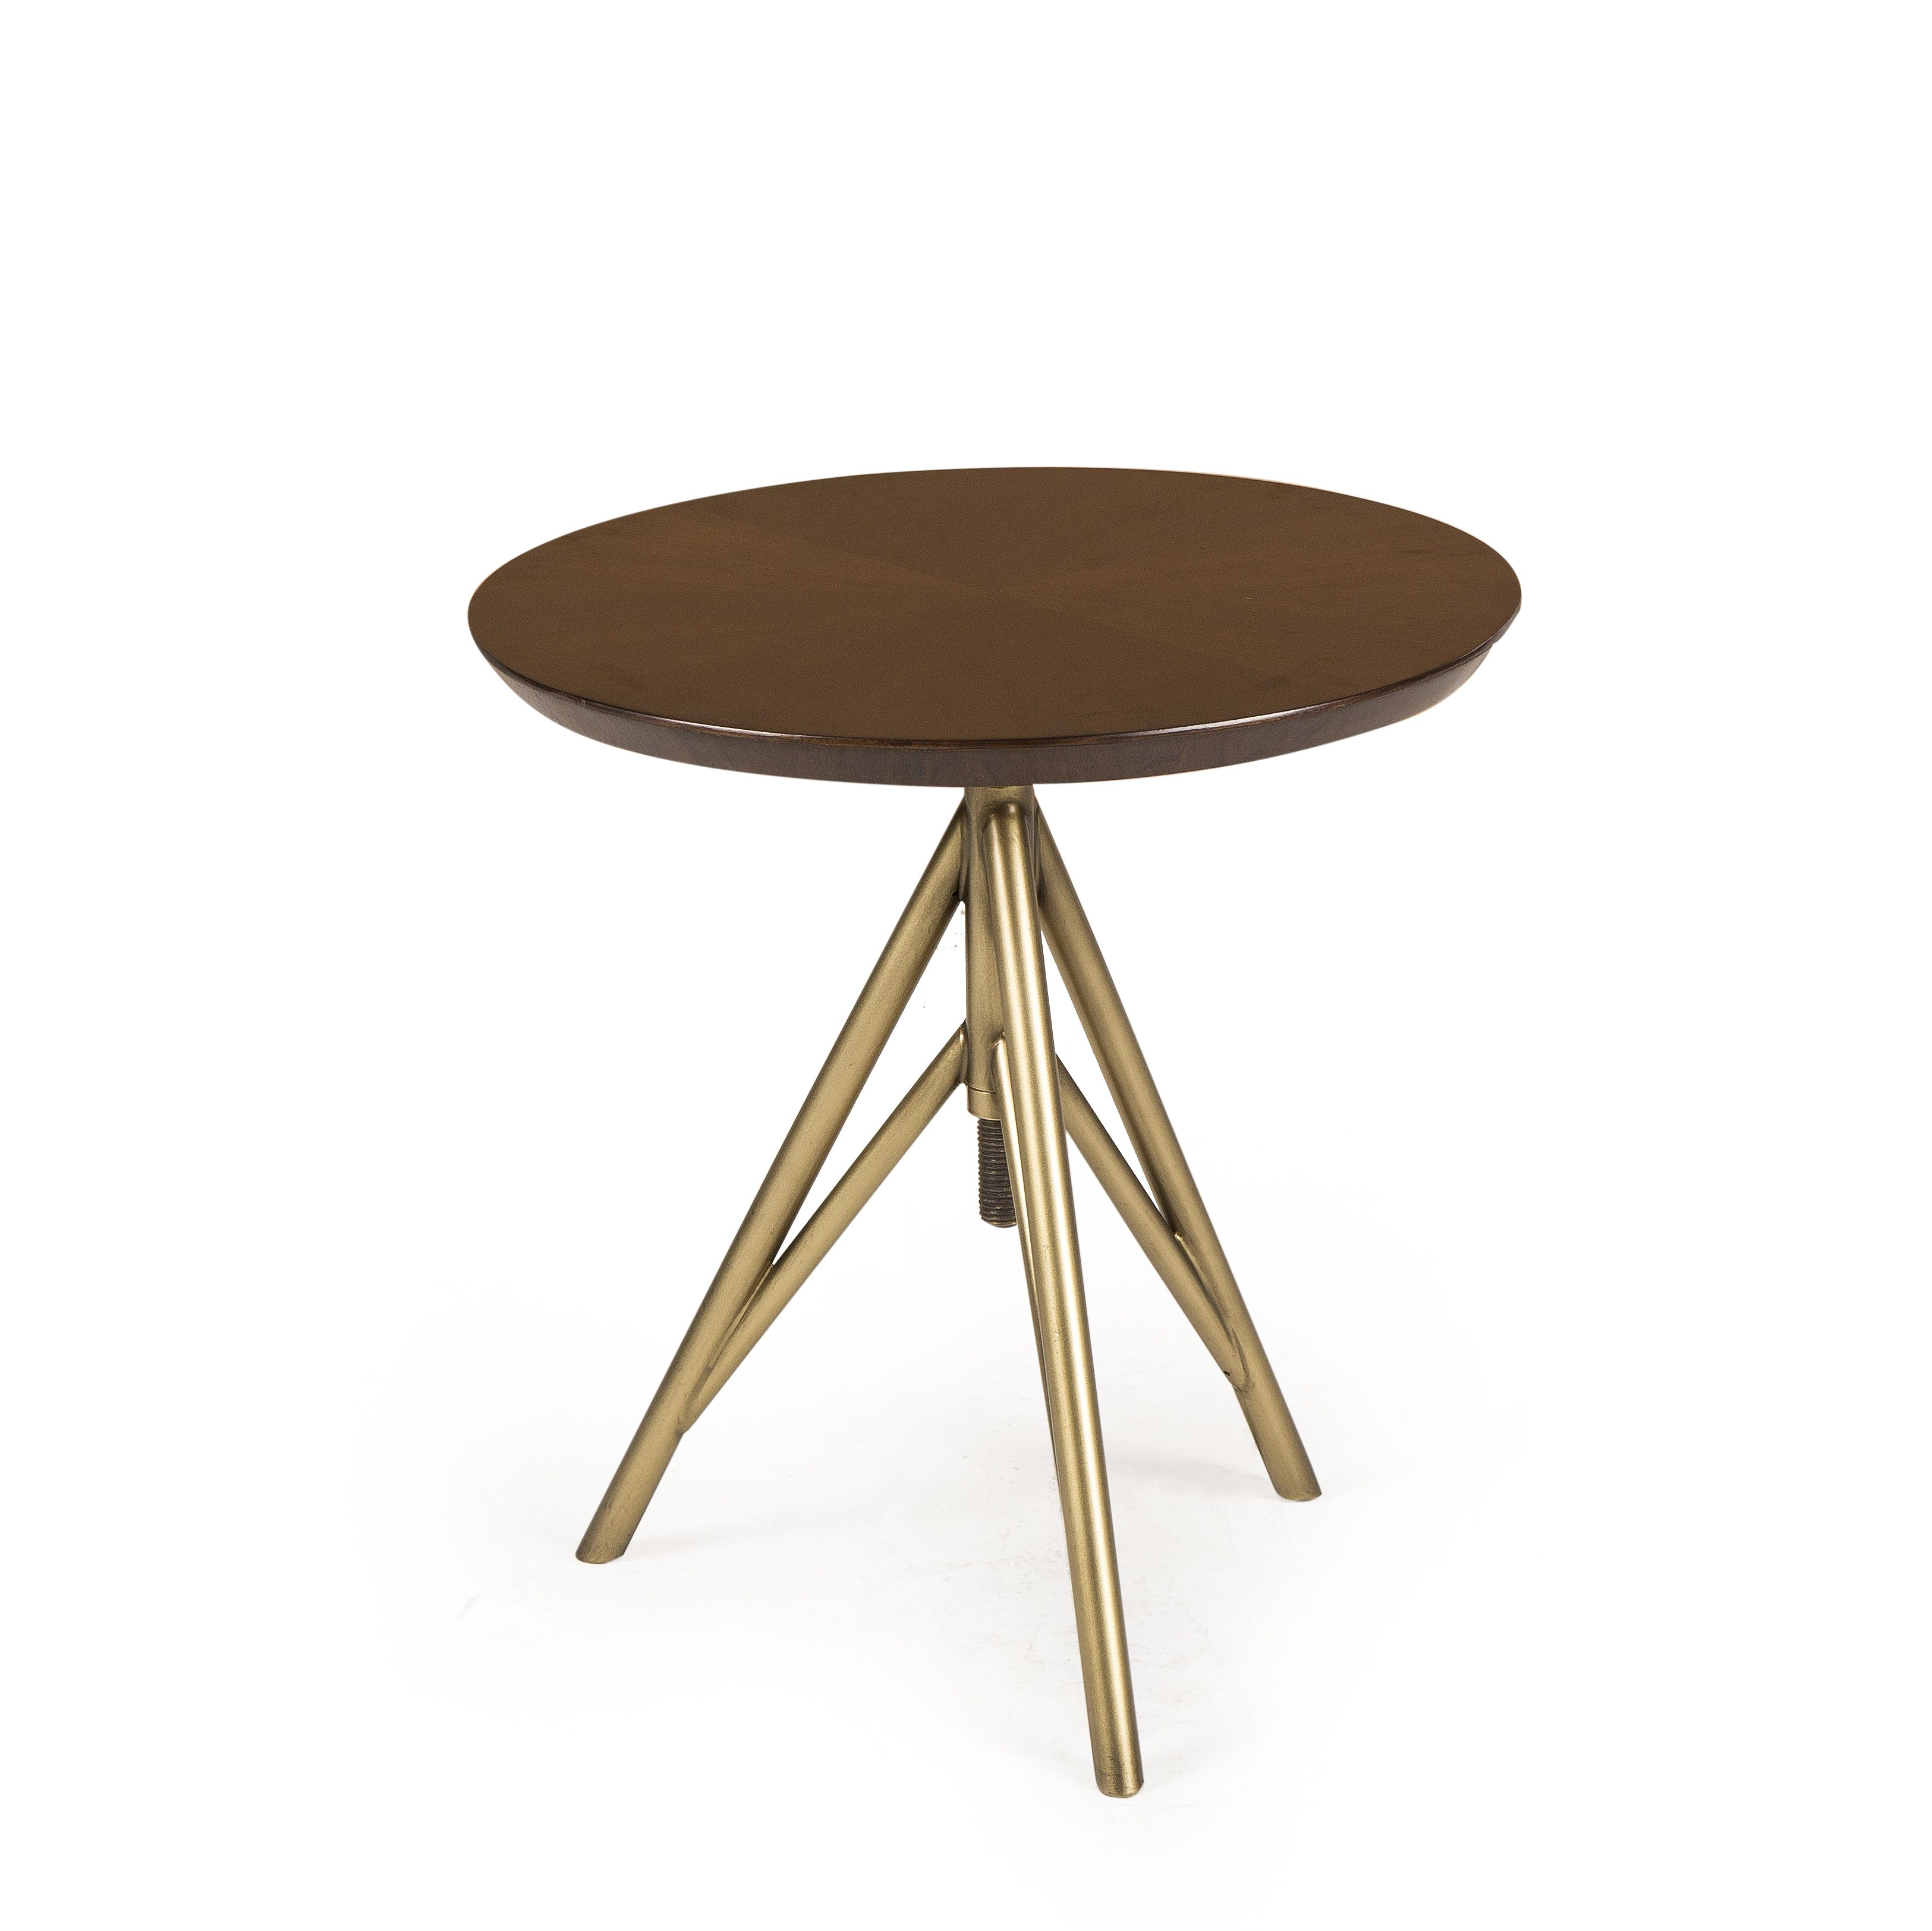 Living Room Durham Collection Durham Round Side Table A Round Side Table Featuring A Wooden Top With Side Table Round Side Table Adjustable Coffee Table [ 3249 x 3250 Pixel ]